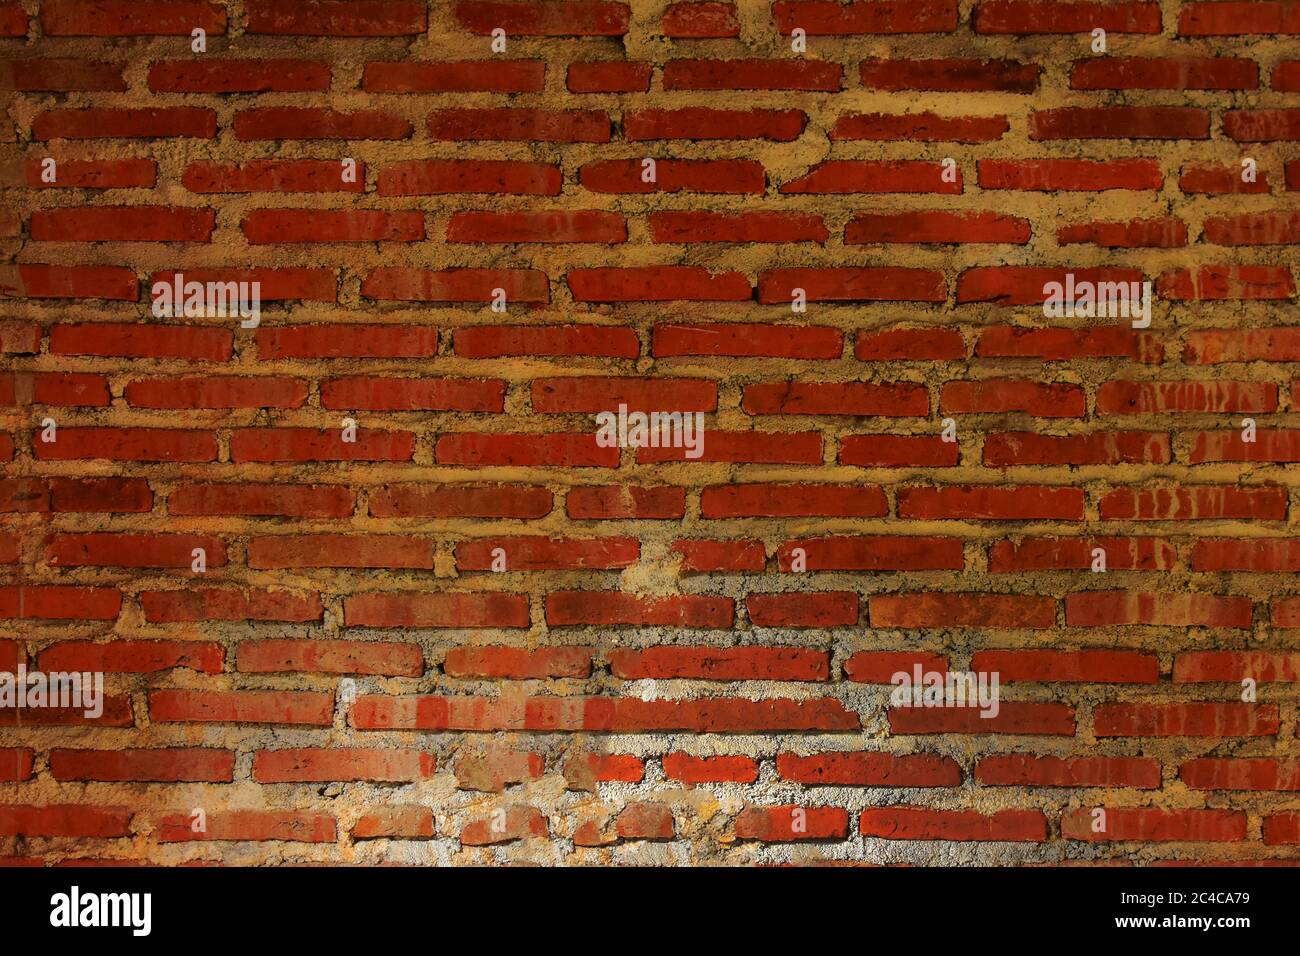 Red Brick Wall Can Be Used As Wallpaper And Background Hd Image And Large Resolution Stock Photo Alamy